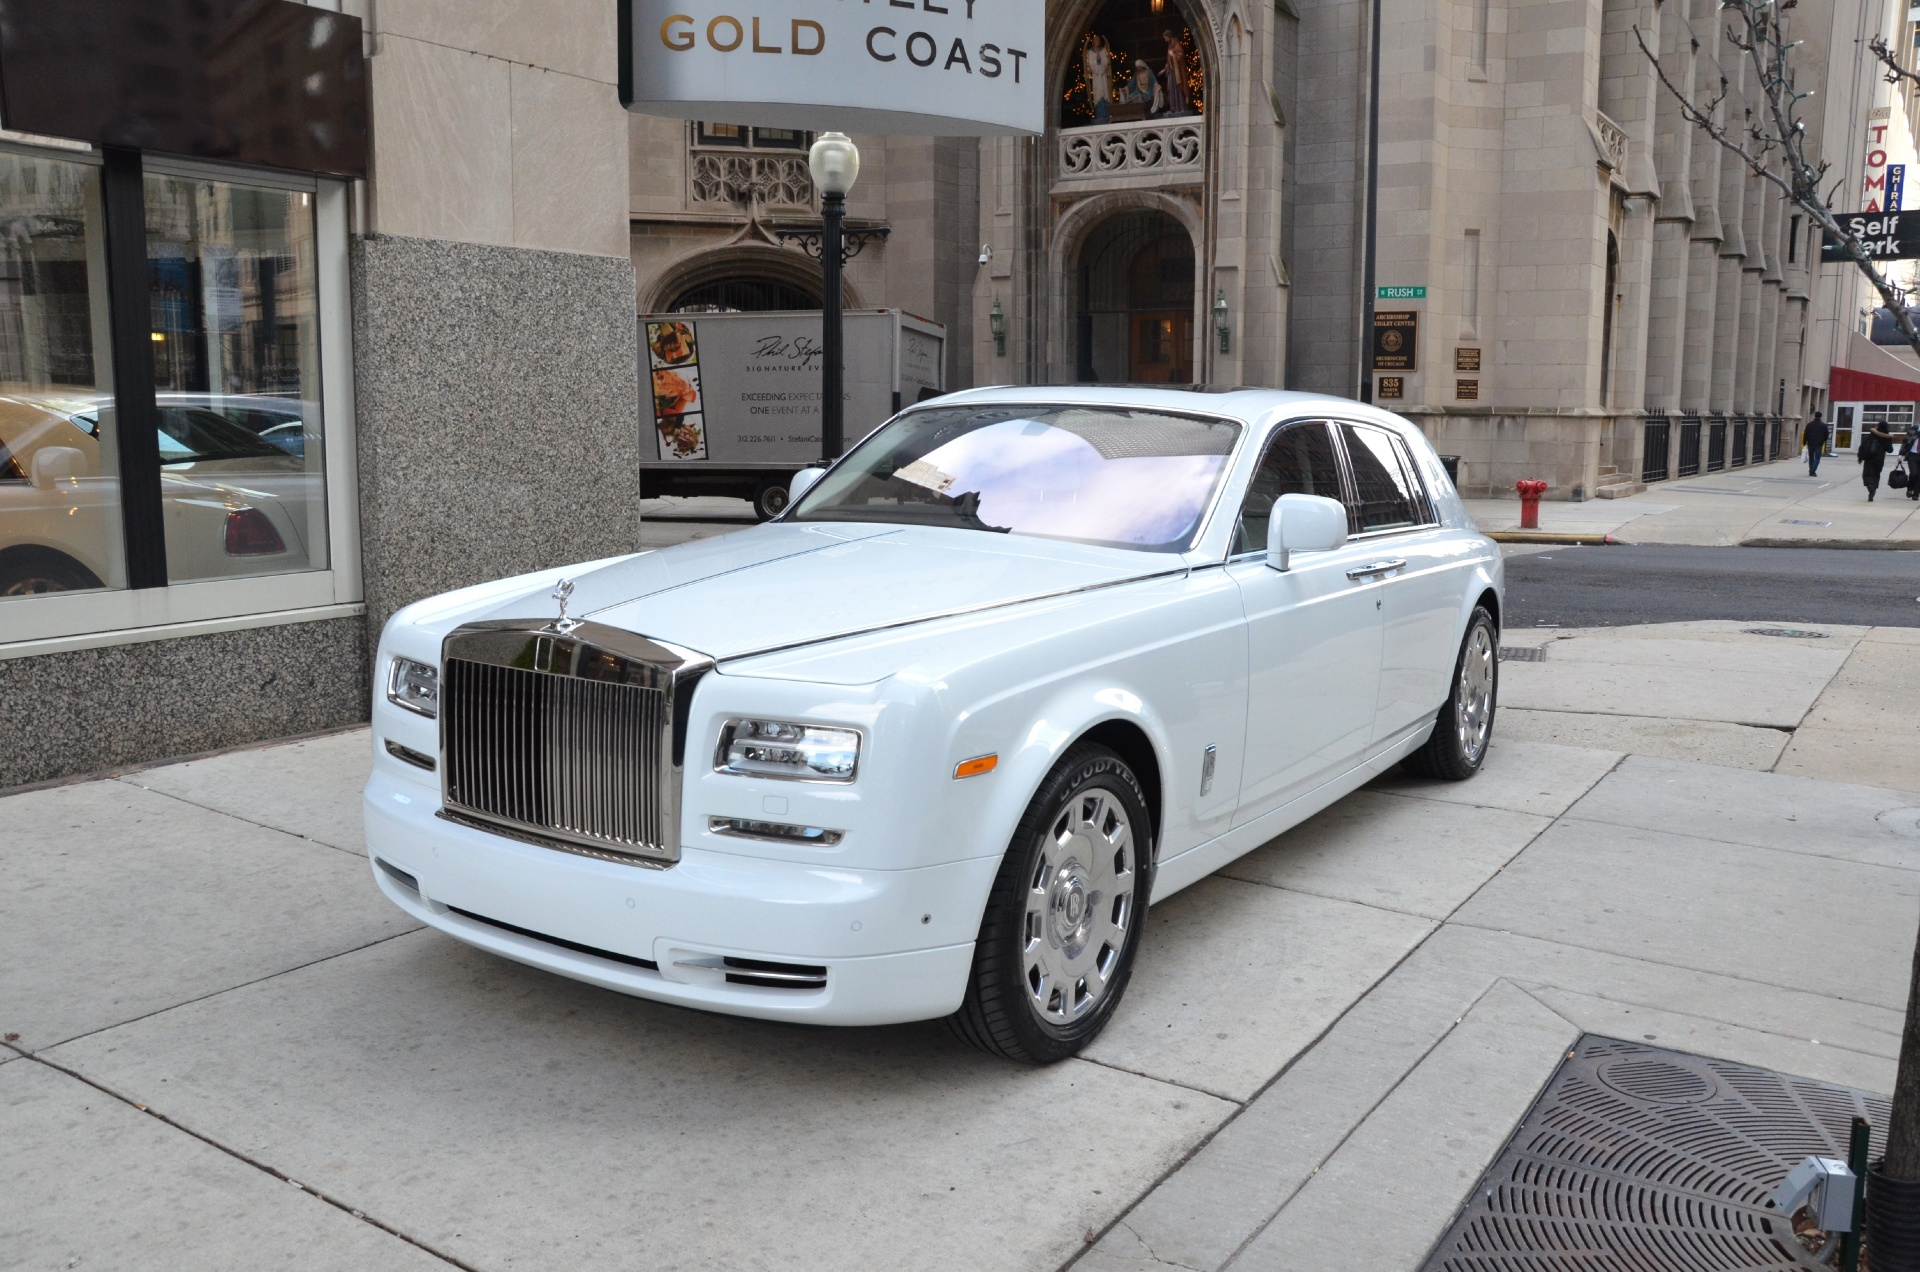 2013 Rolls royce Phantom #17